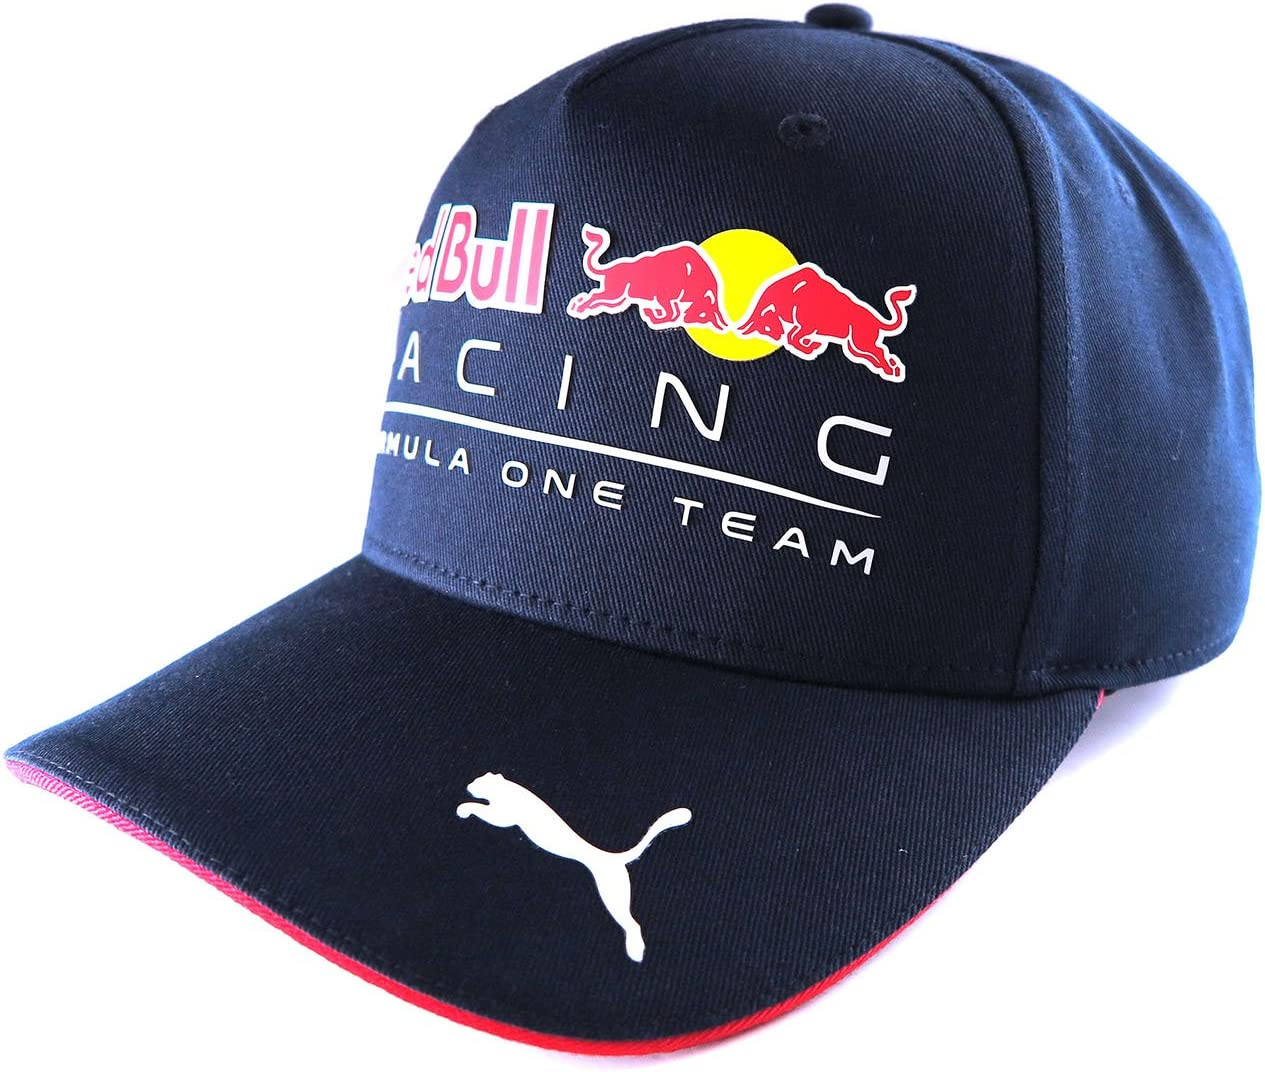 Red Bull Racing Formula One Team Nuevo. 2017 Gorra de Adulto Puma ...